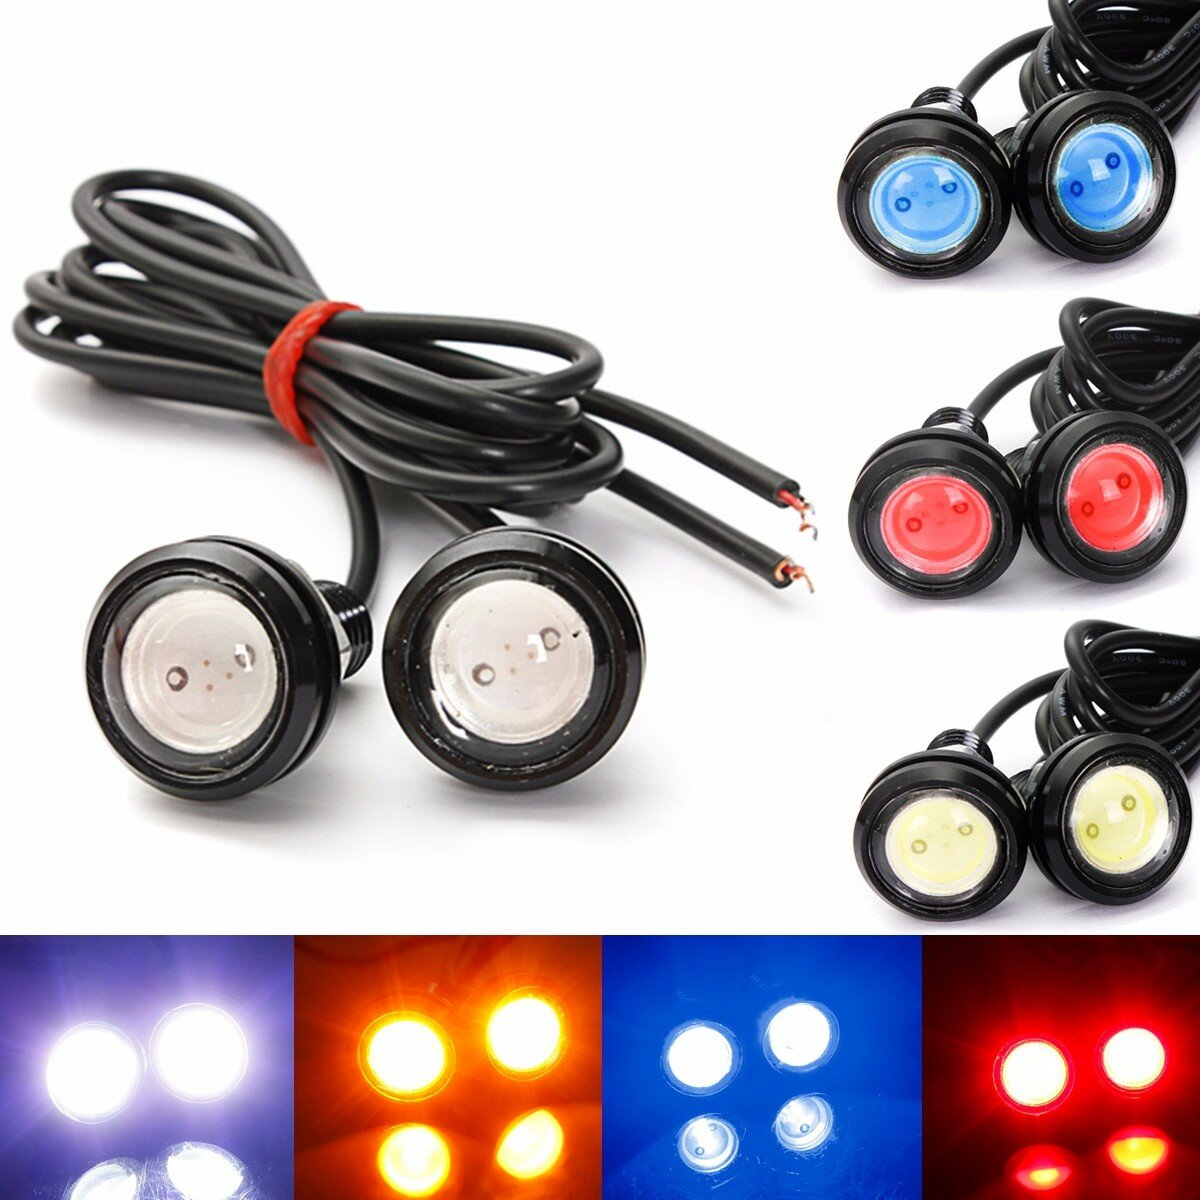 2PCS 3W LED Eagle Eye Lights Daytime Running DRL Bulb Backup Reversing Lamp 12V White for Car Motor